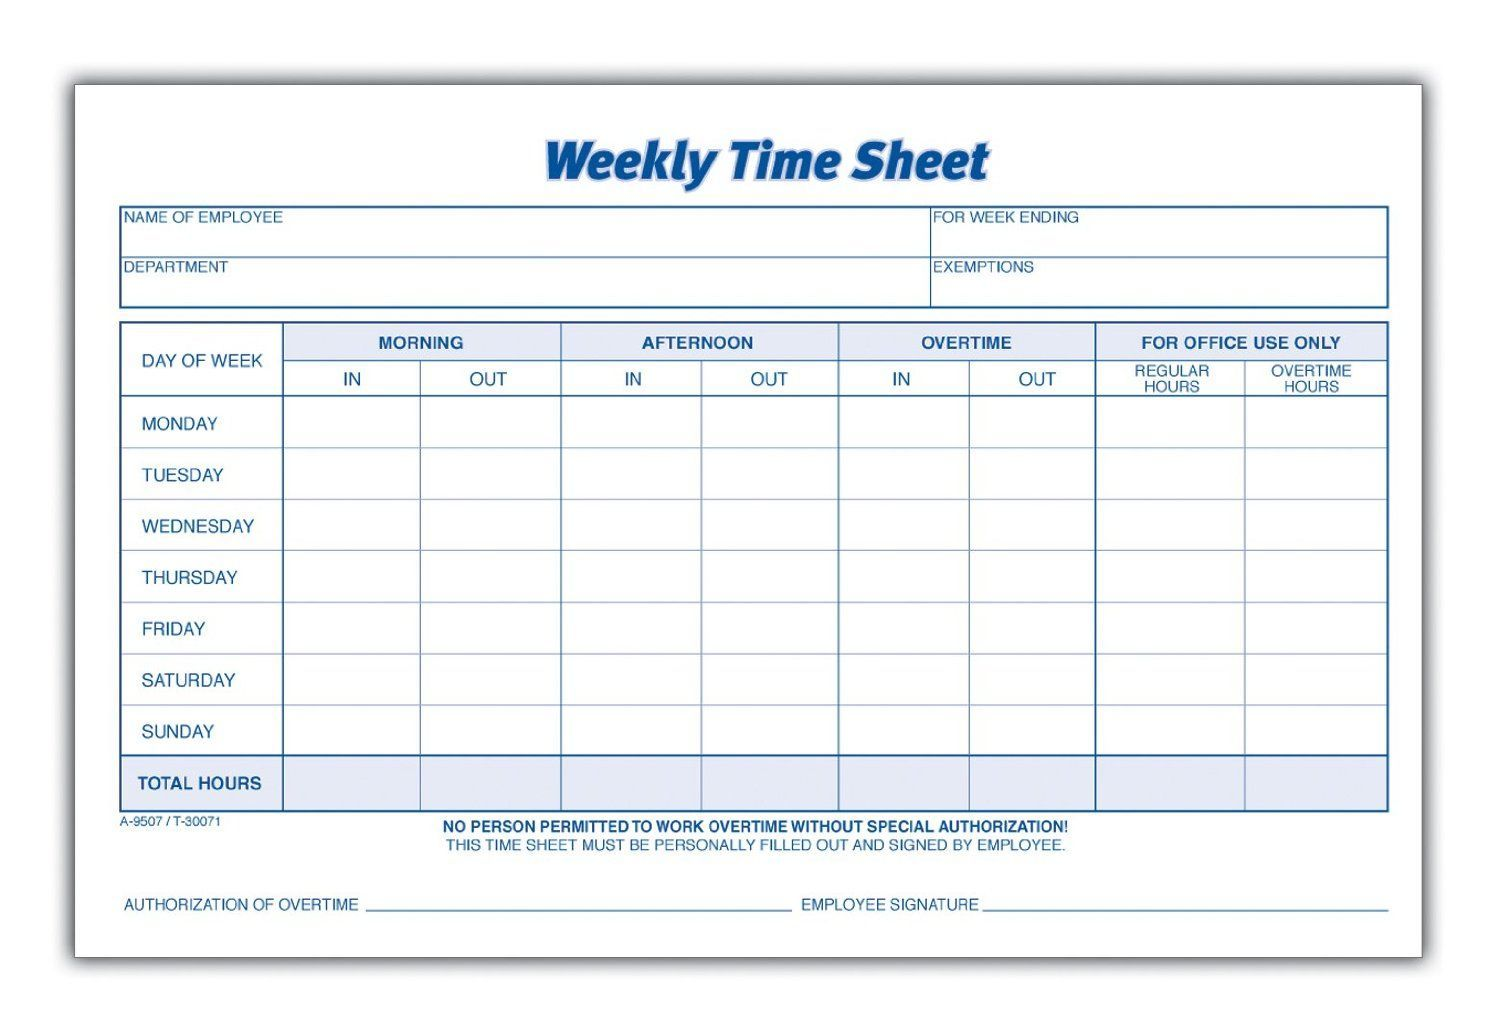 Weekly Employee Time Sheet Good To Know Timesheet Intended For Weekly Time Card Template Free Time Sheet Printable Timesheet Template Card Templates Free